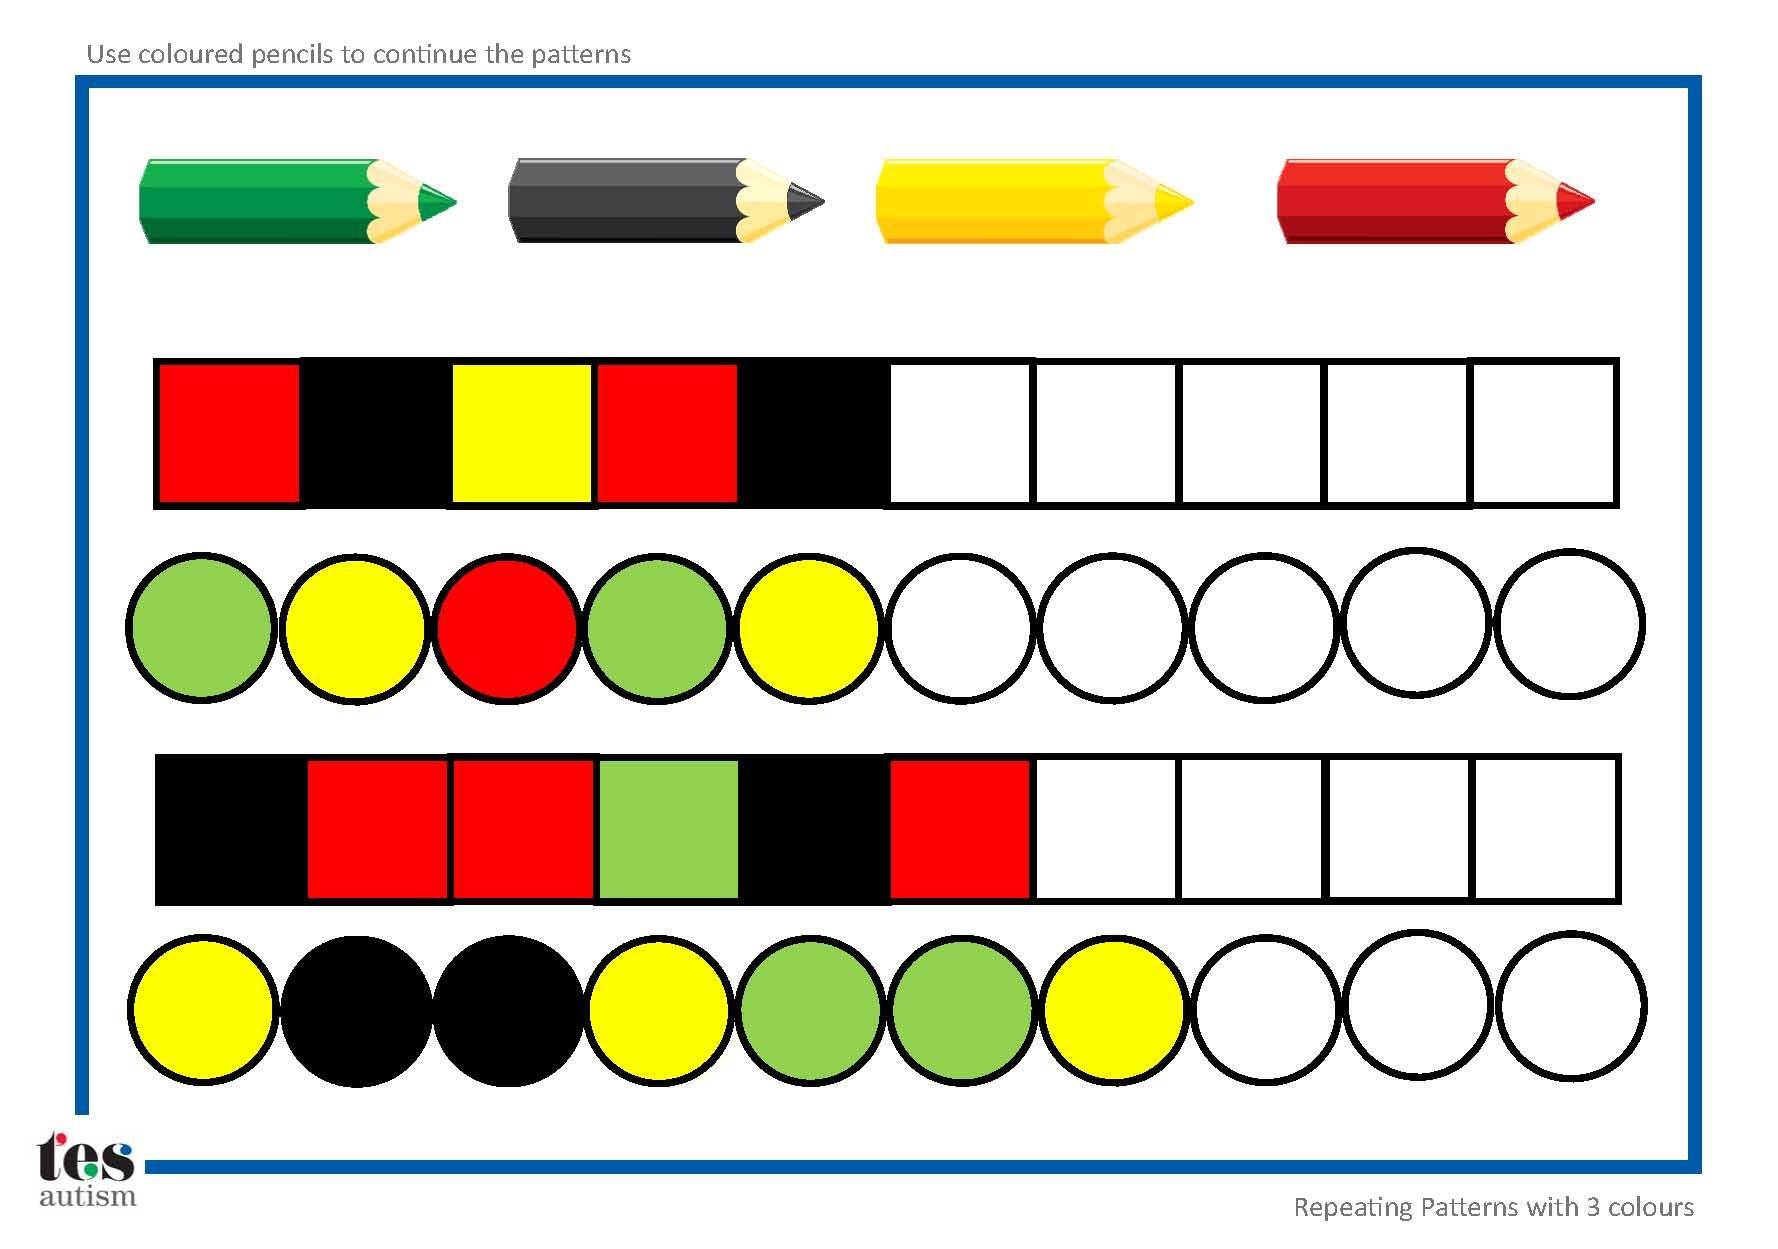 repeating patterns with 3 colours 4 worksheet activities pupils continue the patterns using. Black Bedroom Furniture Sets. Home Design Ideas